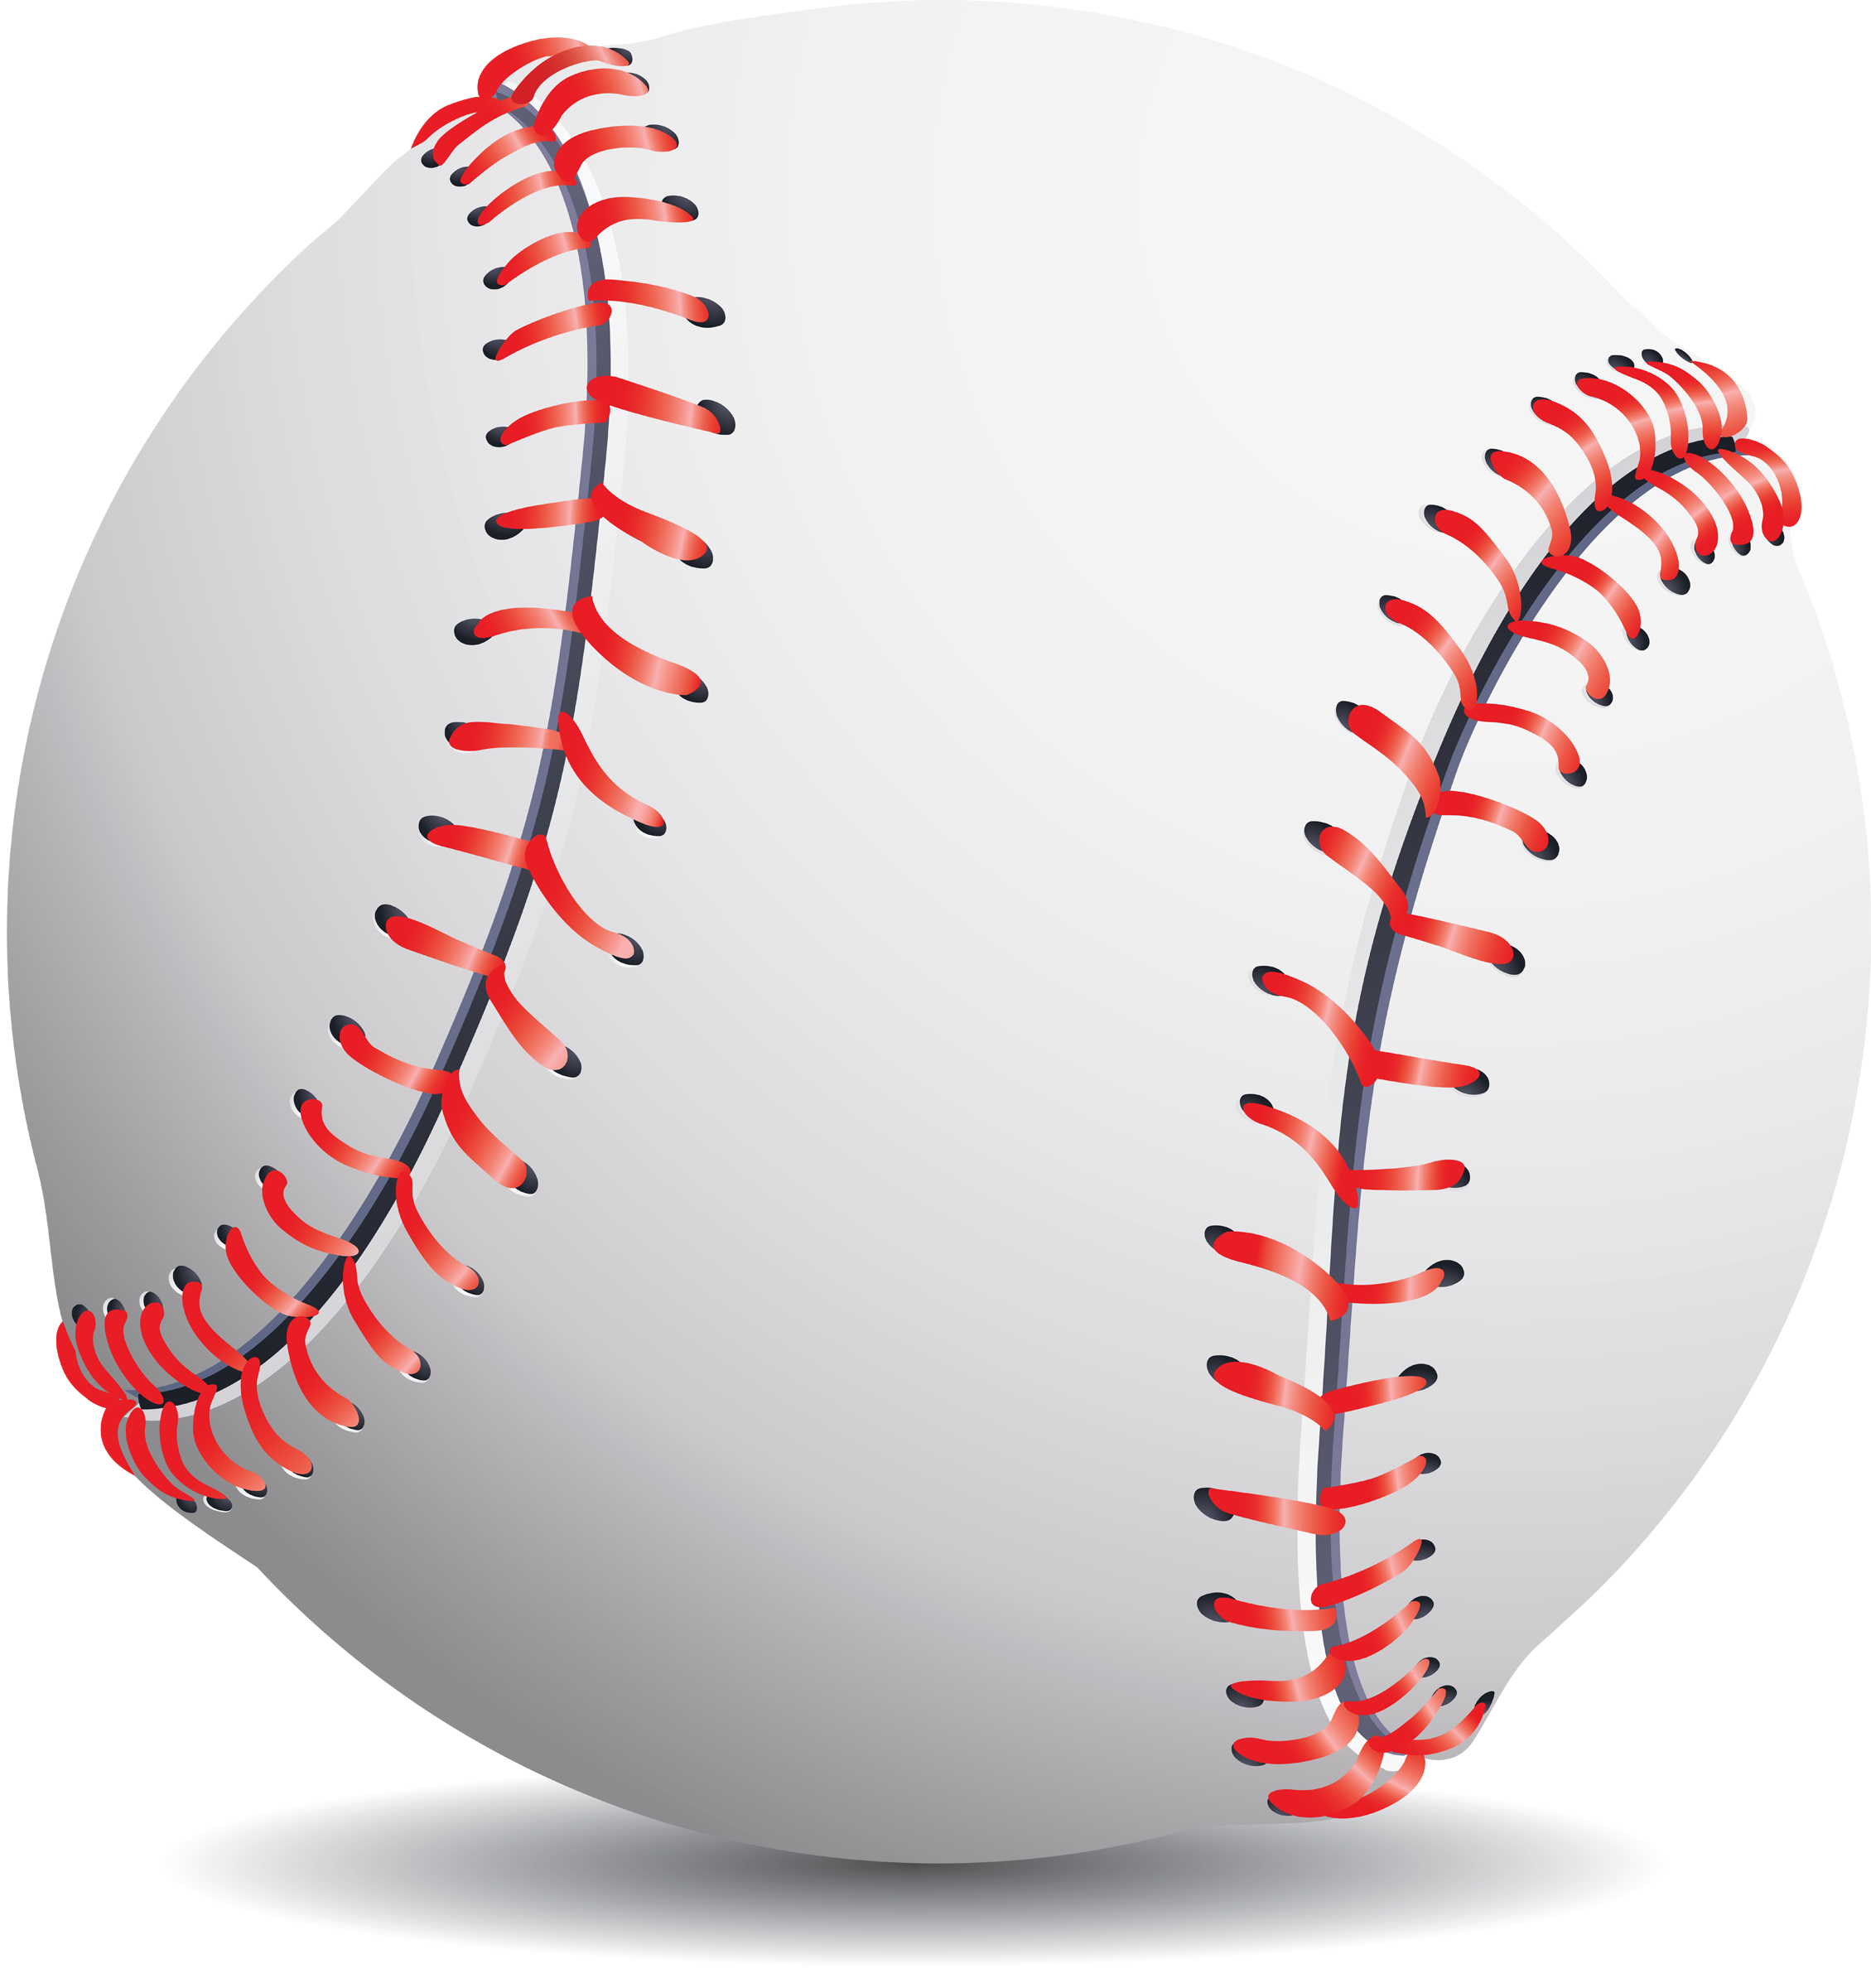 3d baseball thread clipart svg Index of /wp-content/uploads/2014/12 svg